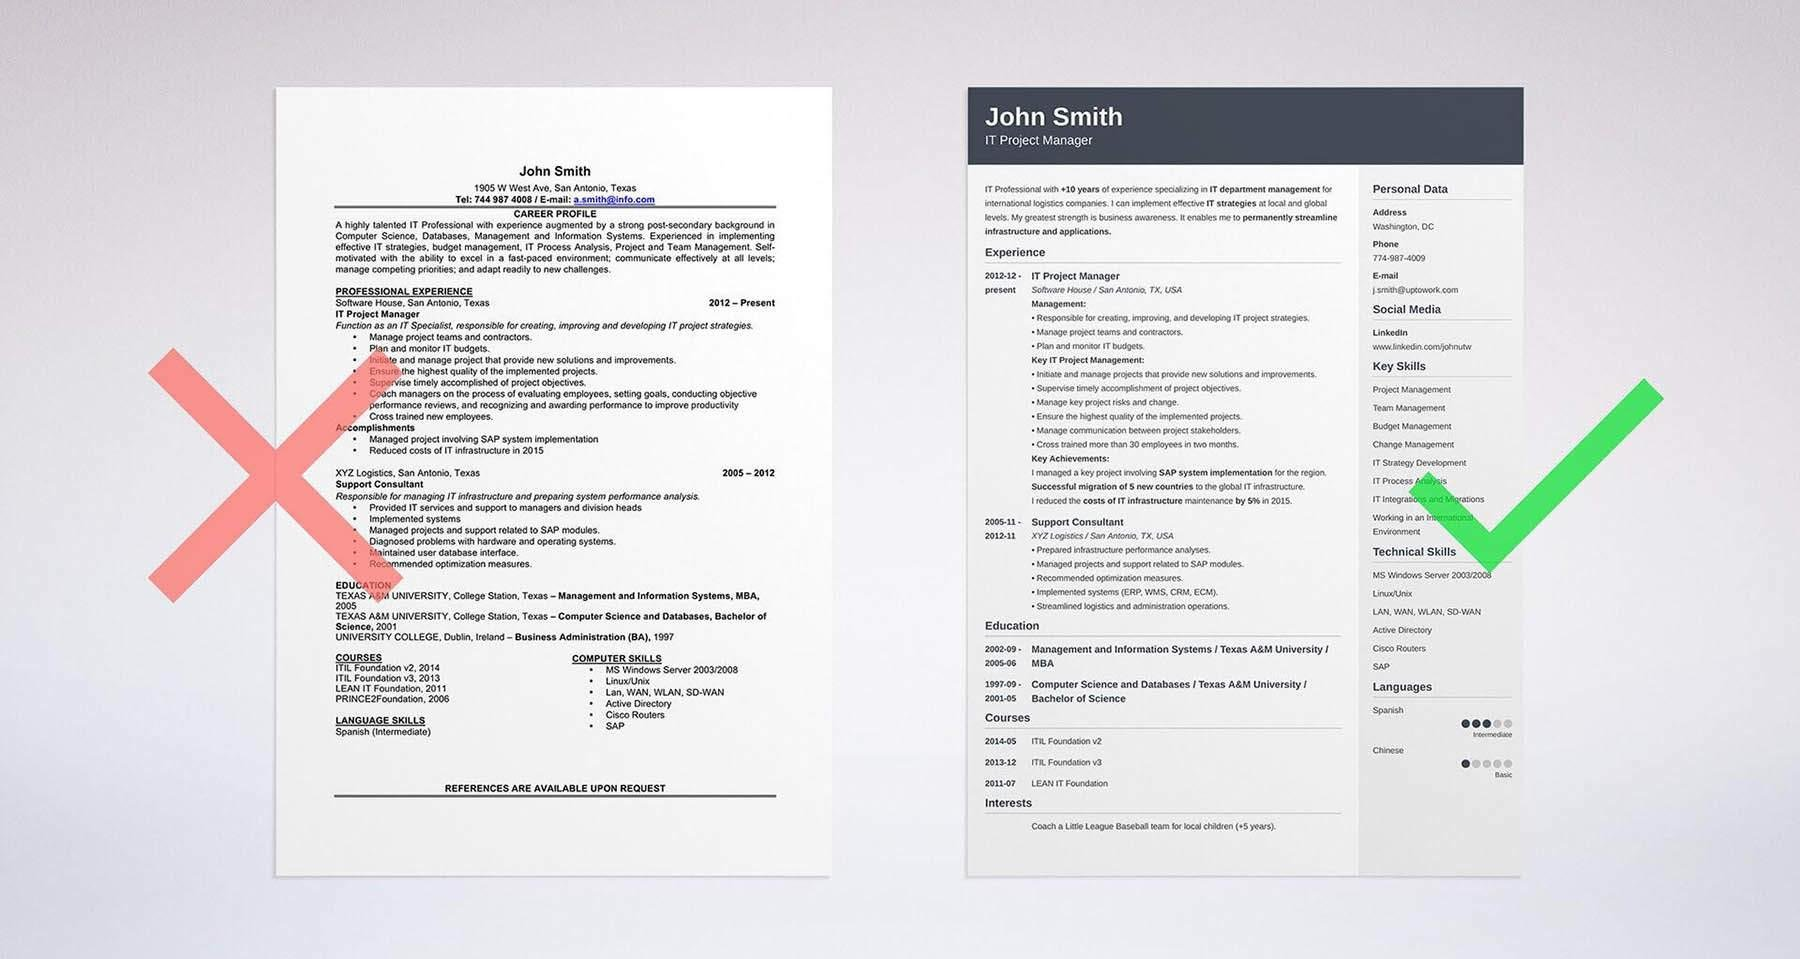 Highlight Your Resume Objective With Our Templates   Create Your Resume In  5 Minutes Here.  Simple Resume Objective